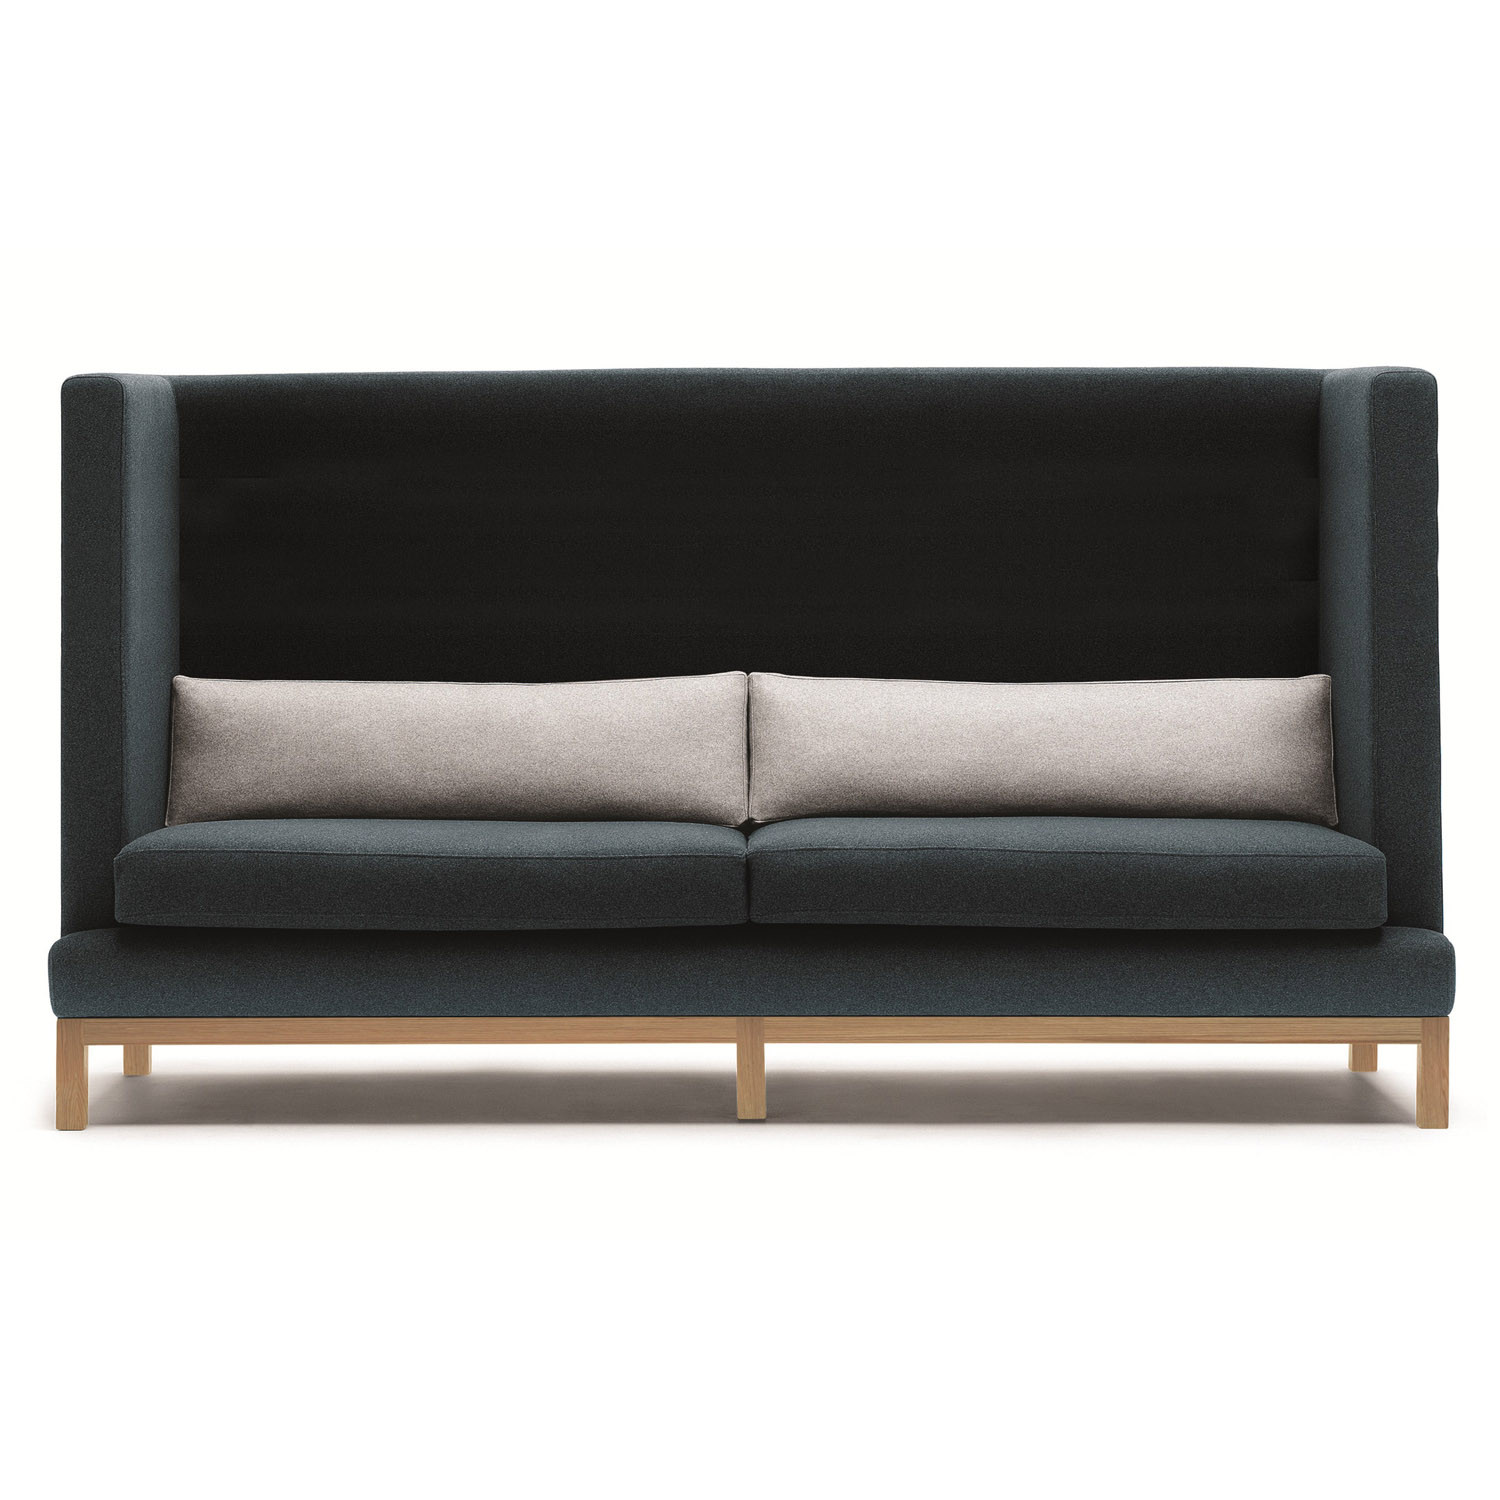 Arthur High Back Sofa from Lyndon Design